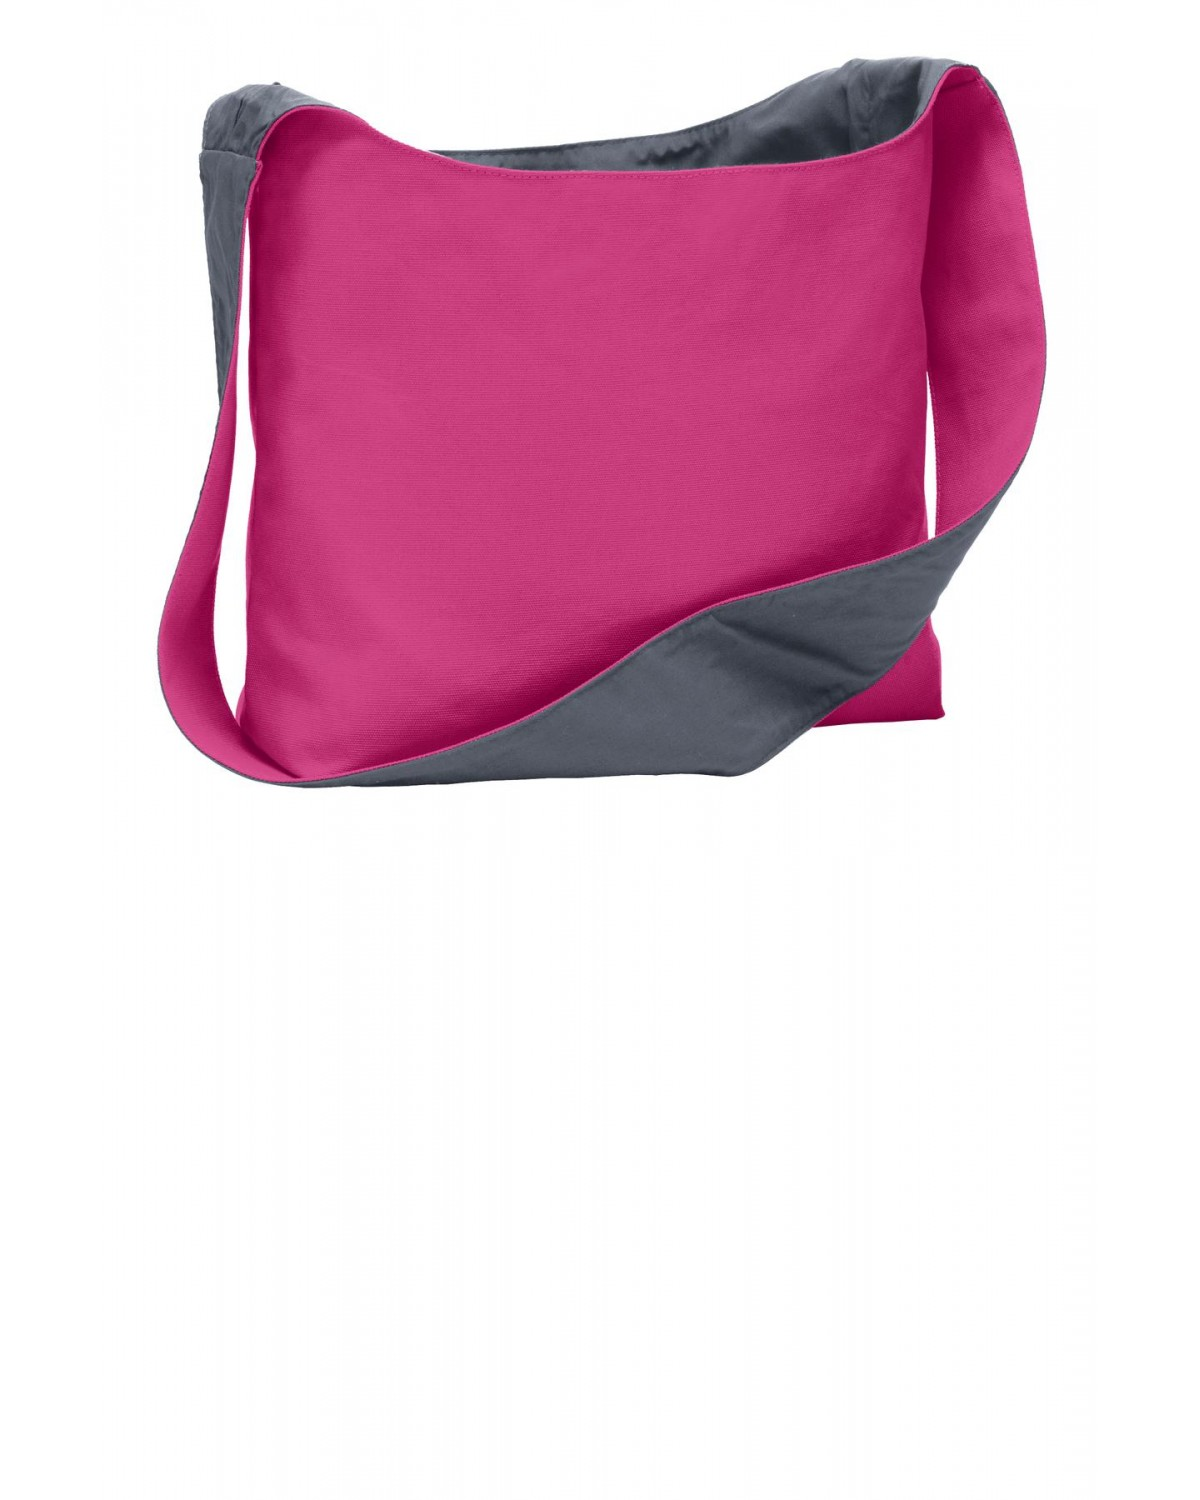 BG405 Port Authority Tropical Pink/Charcoal